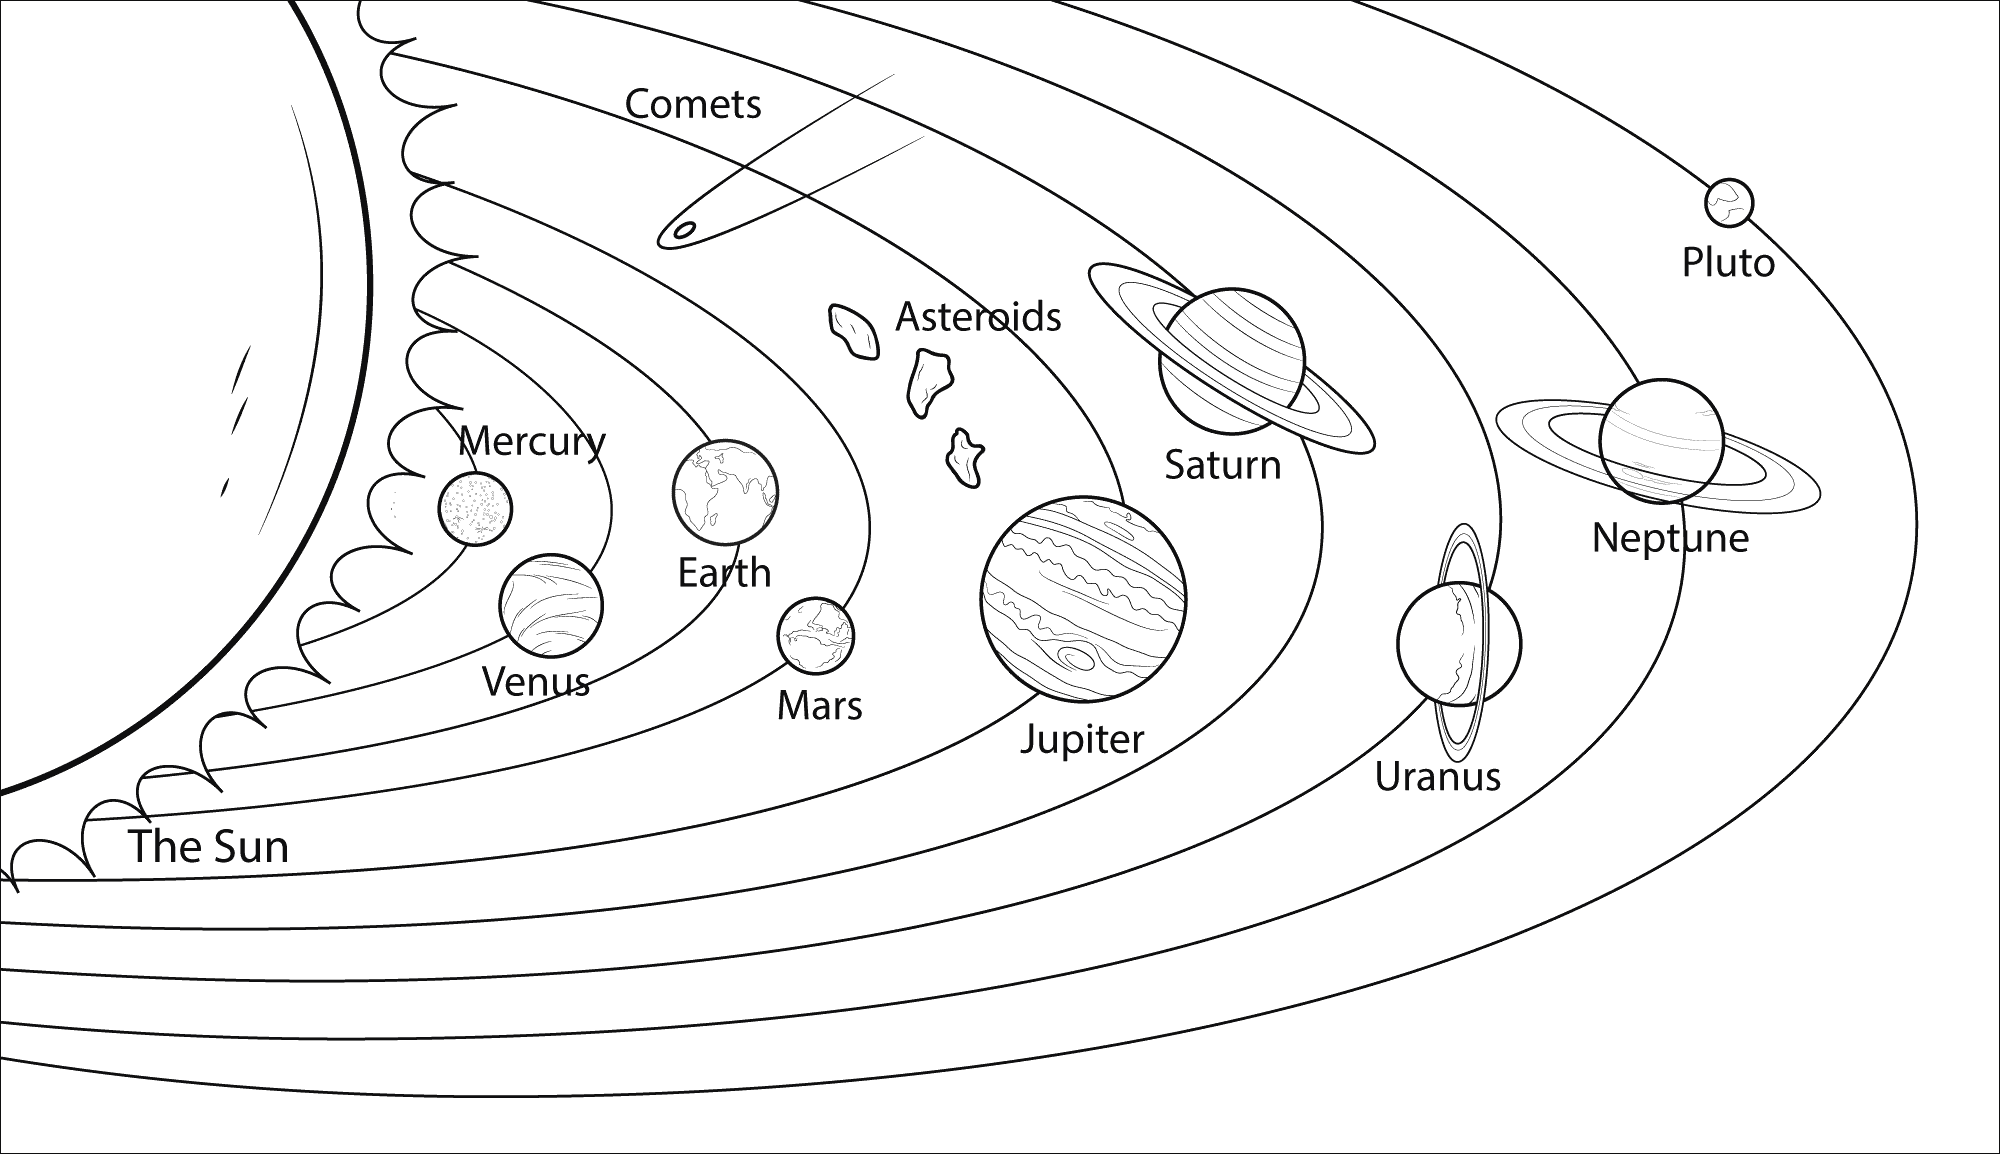 coloring solar system planets pictures of each planet in the solar system coloring planets coloring system solar